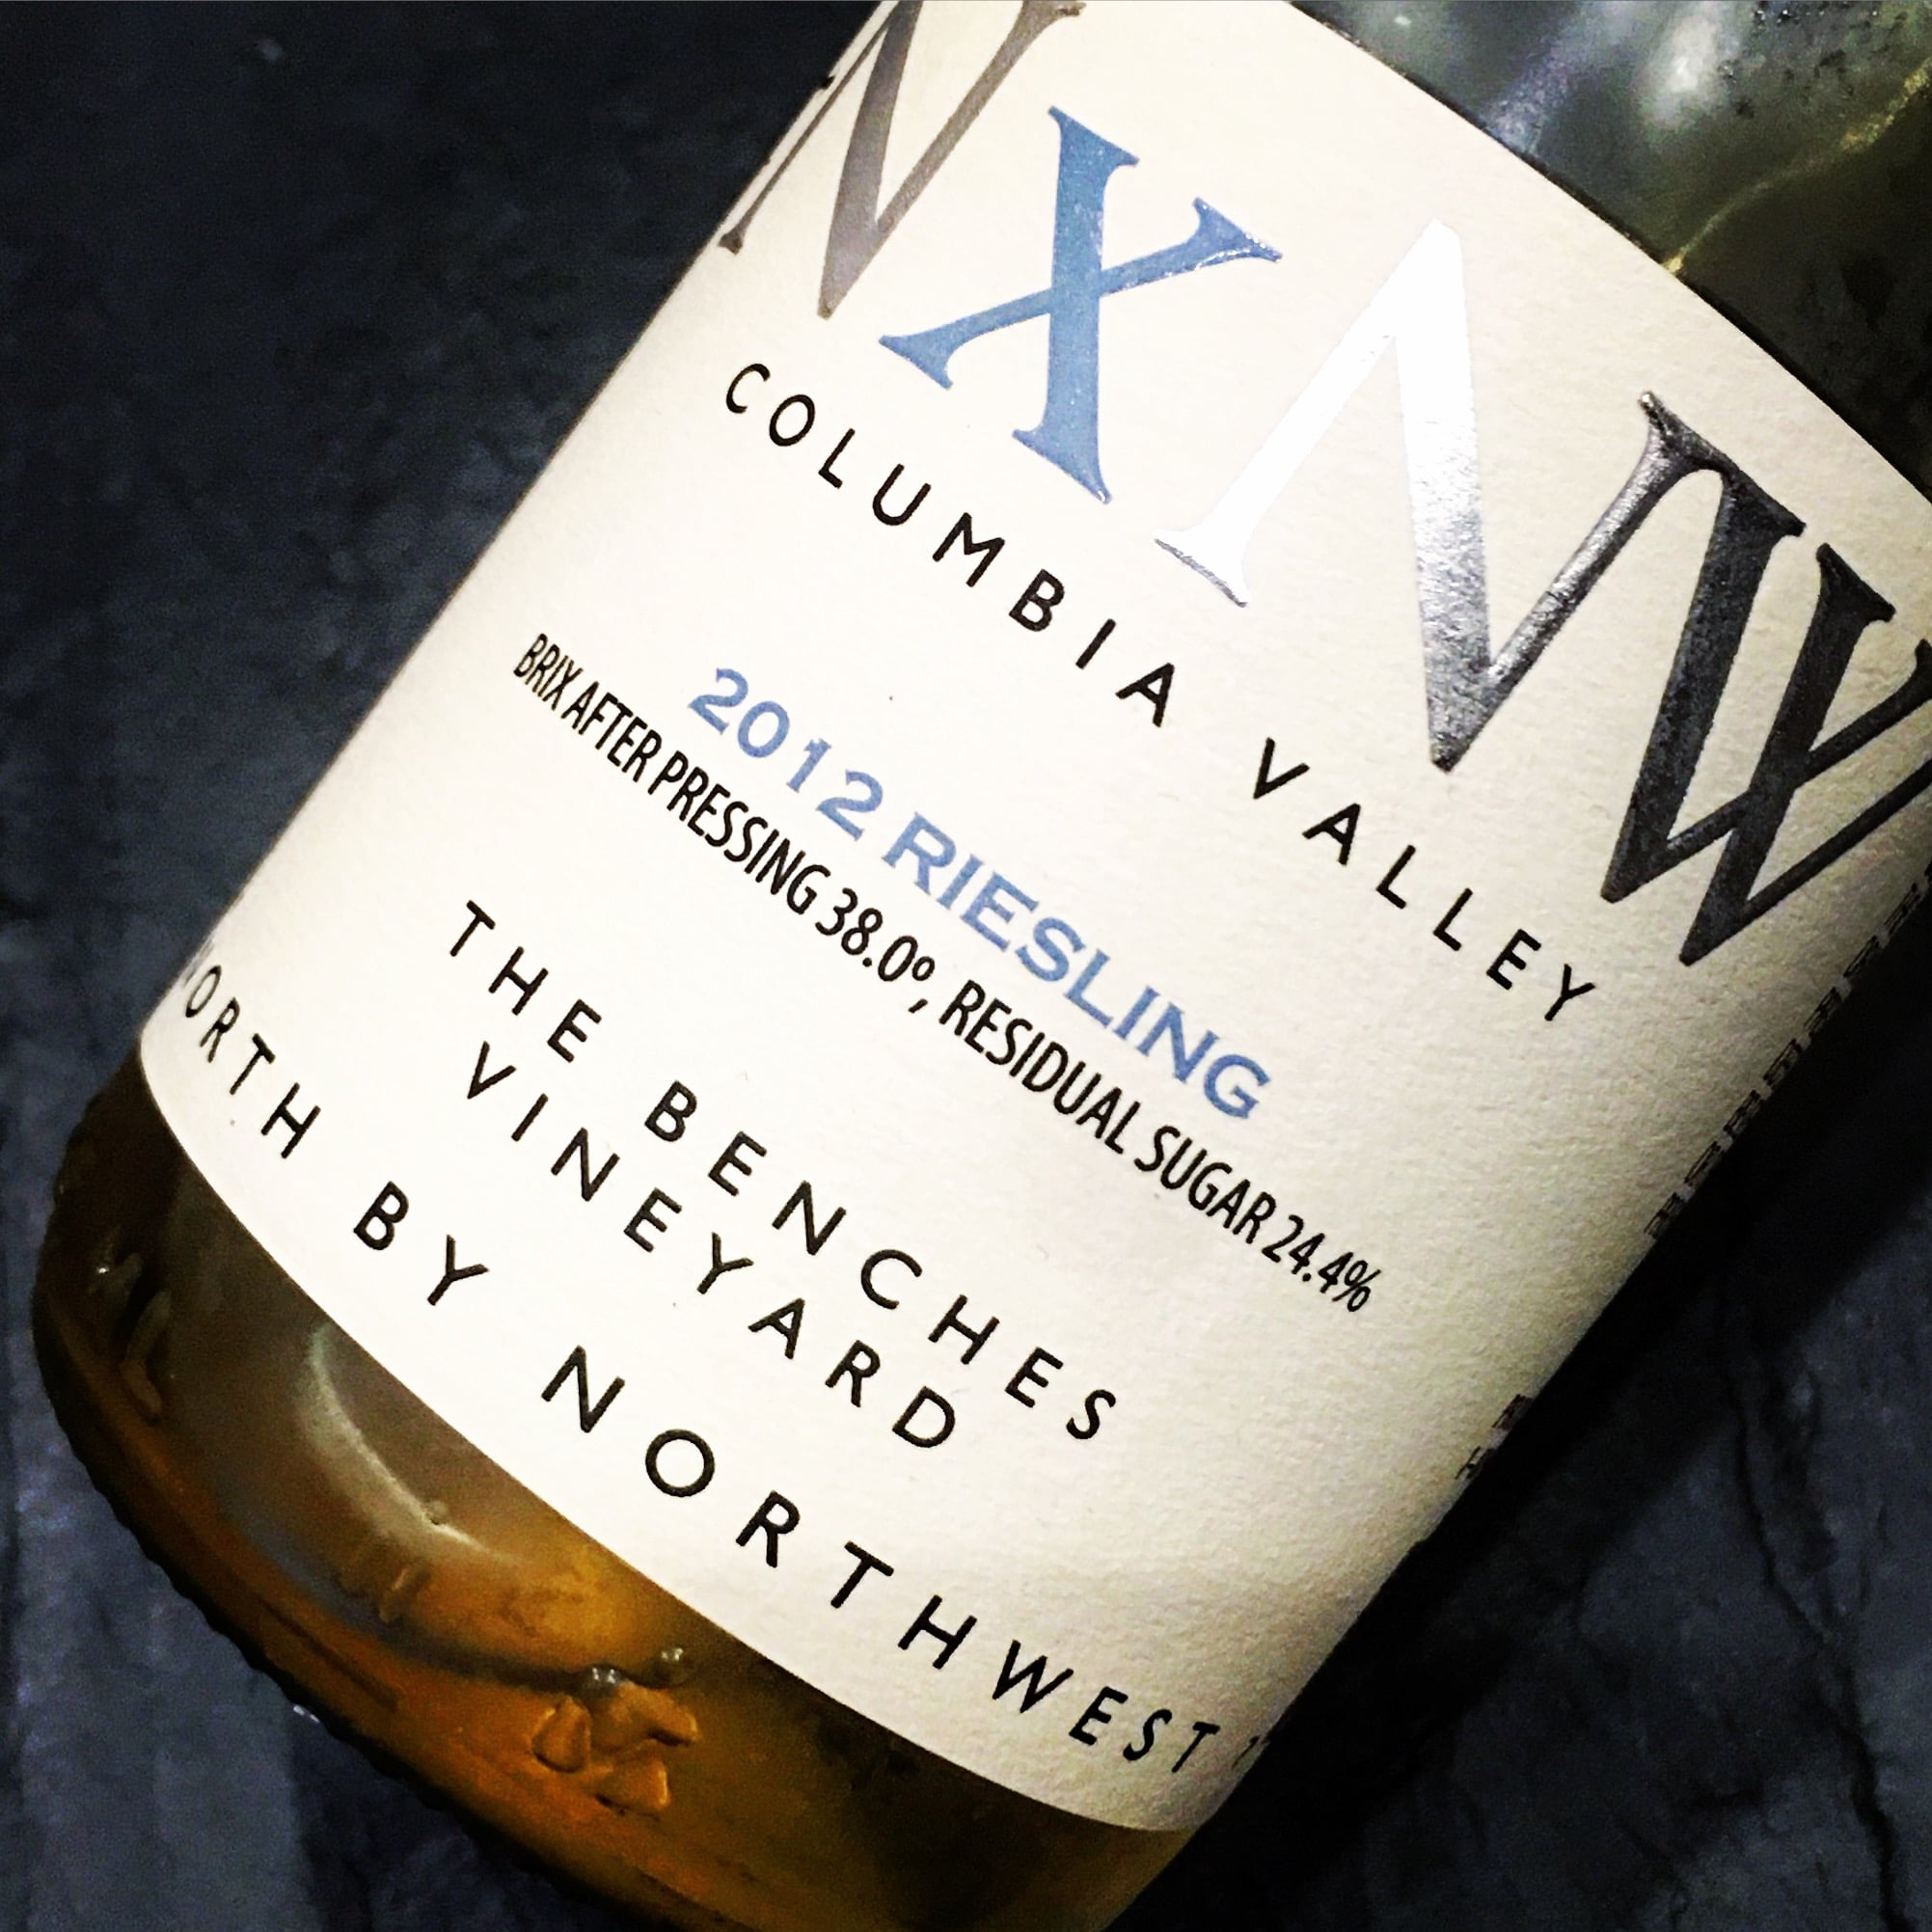 NxNW Riesling The Benches Vineyard 2012